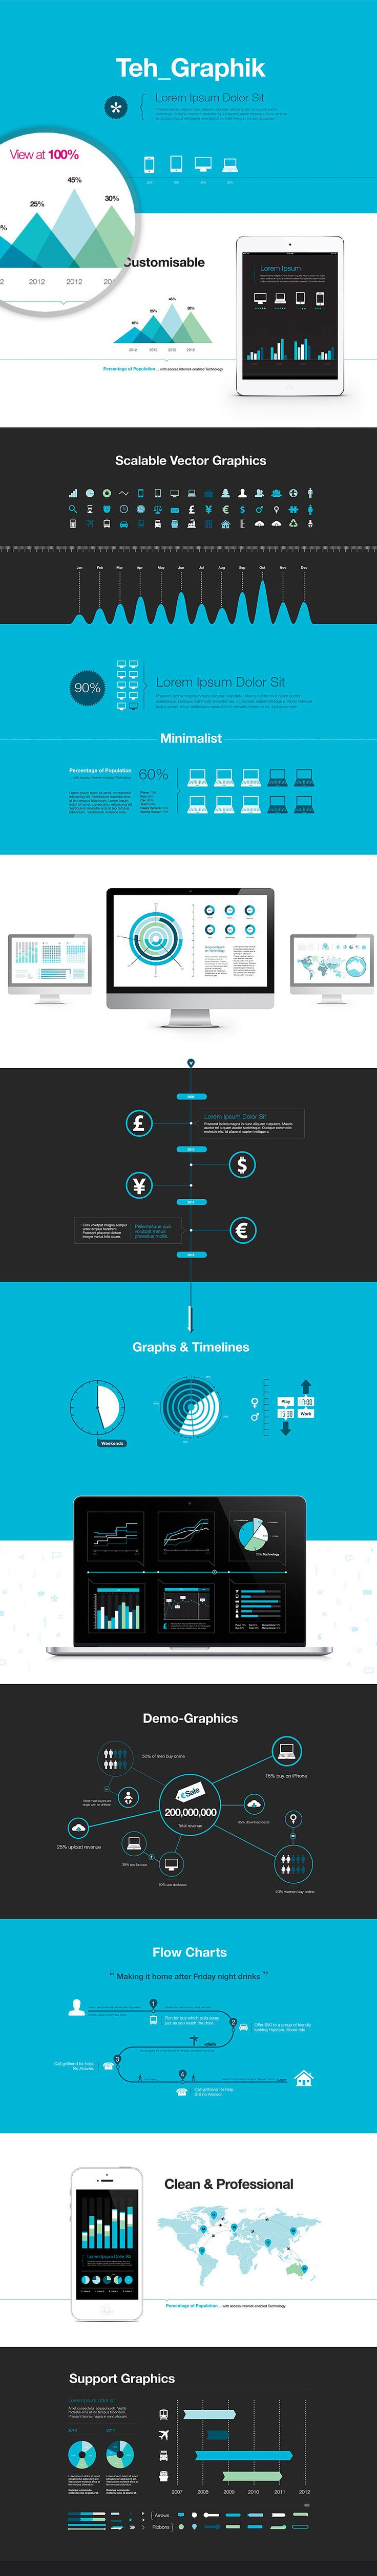 best tennis images on pinterest graph design page layout and